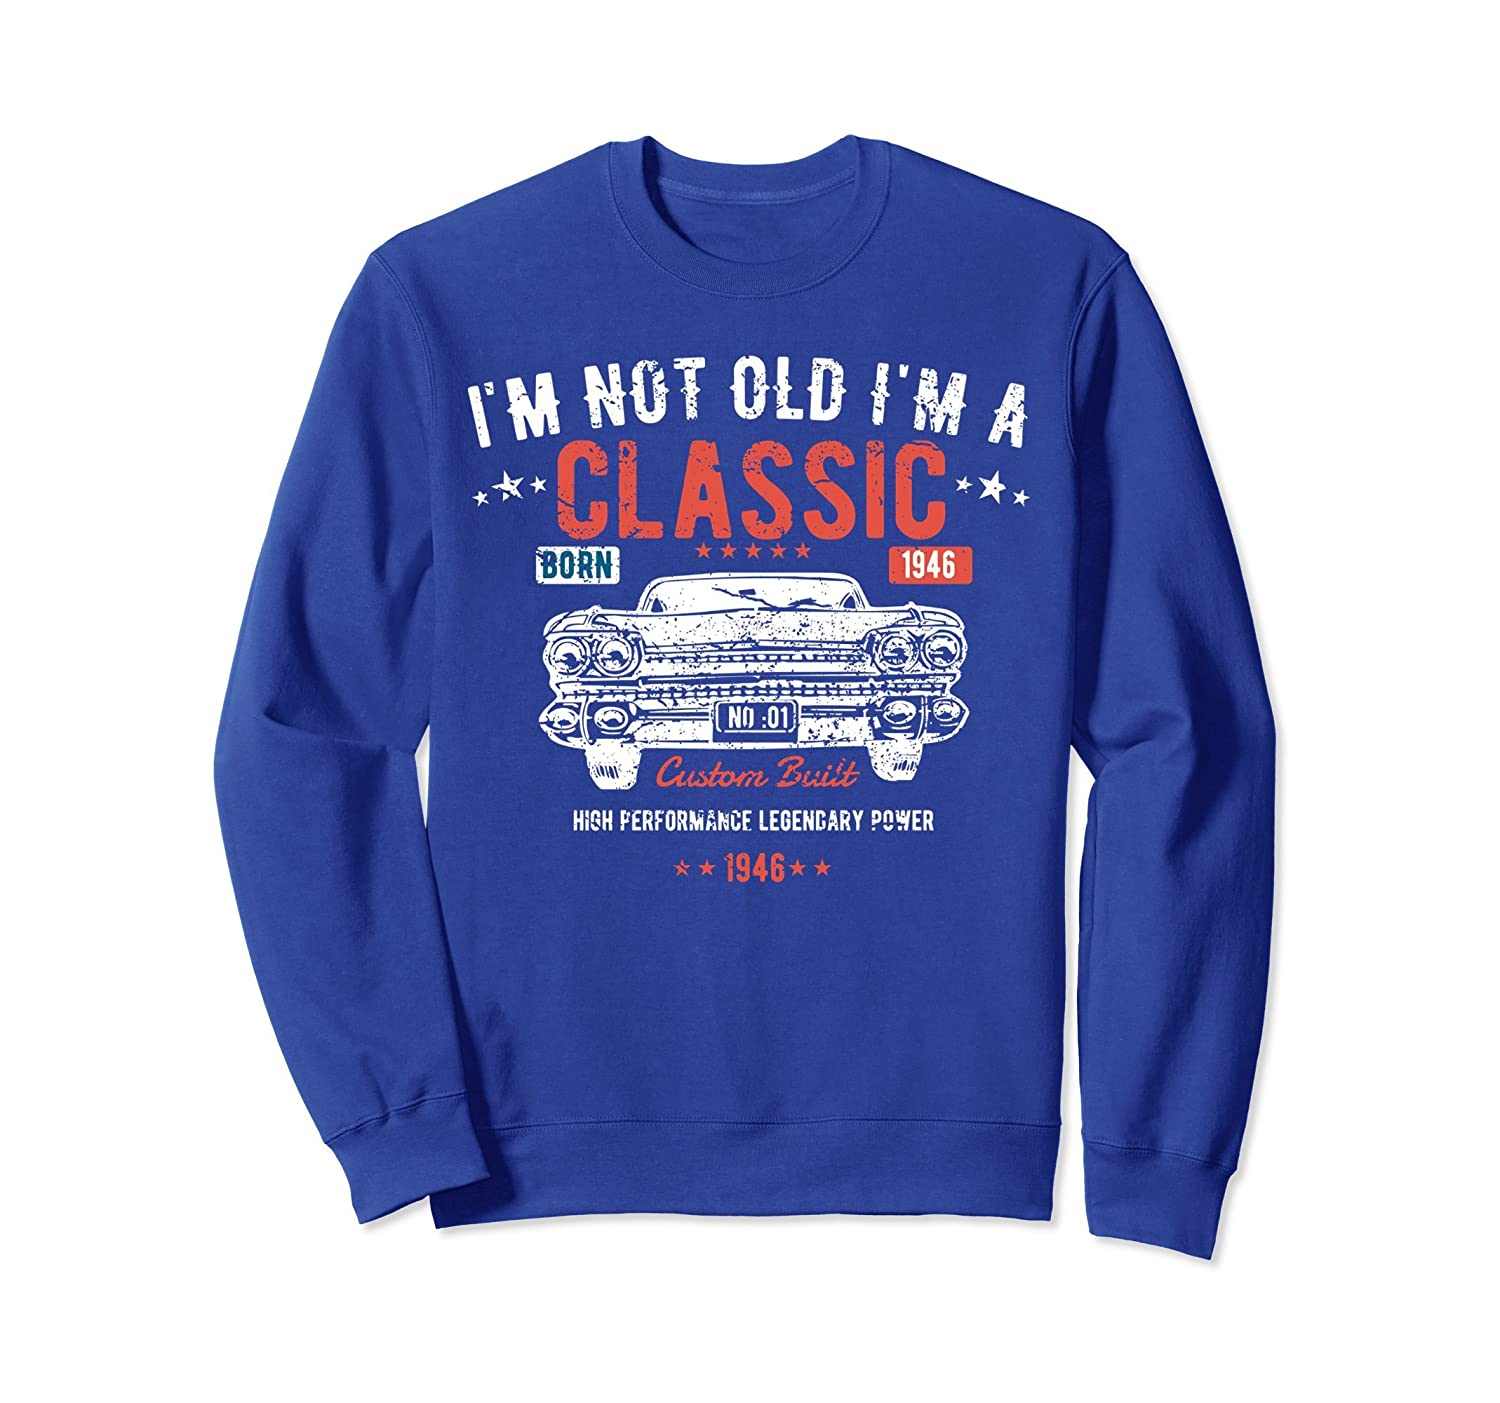 72nd Birthday Sweatshirt I'm Not Old I'm a Classic 1946-TH